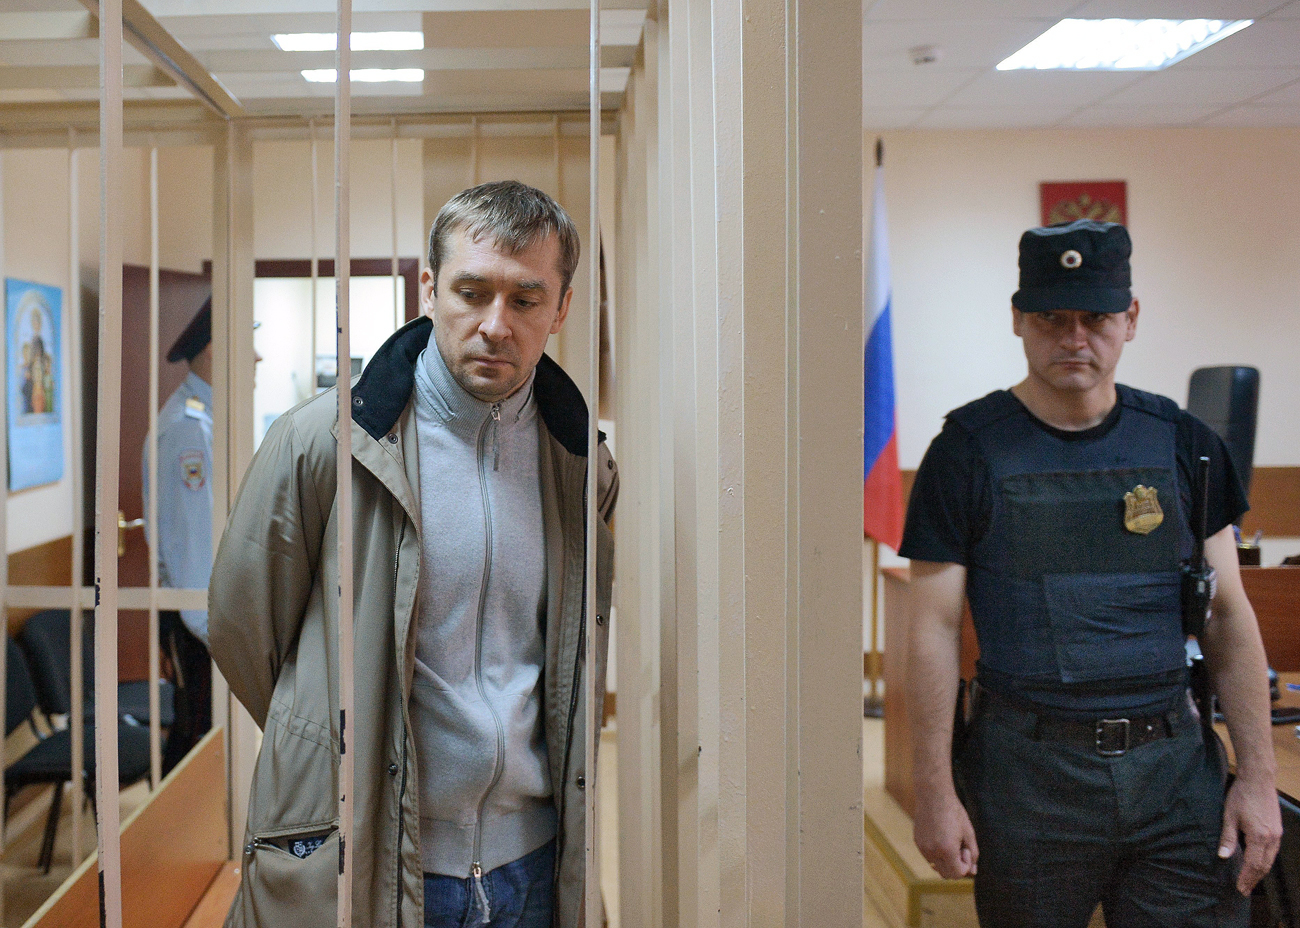 Russian anti-corruption official Dmitry Zakharchenko is charged with official misconduct, obstructing justice and large-scale bribery.